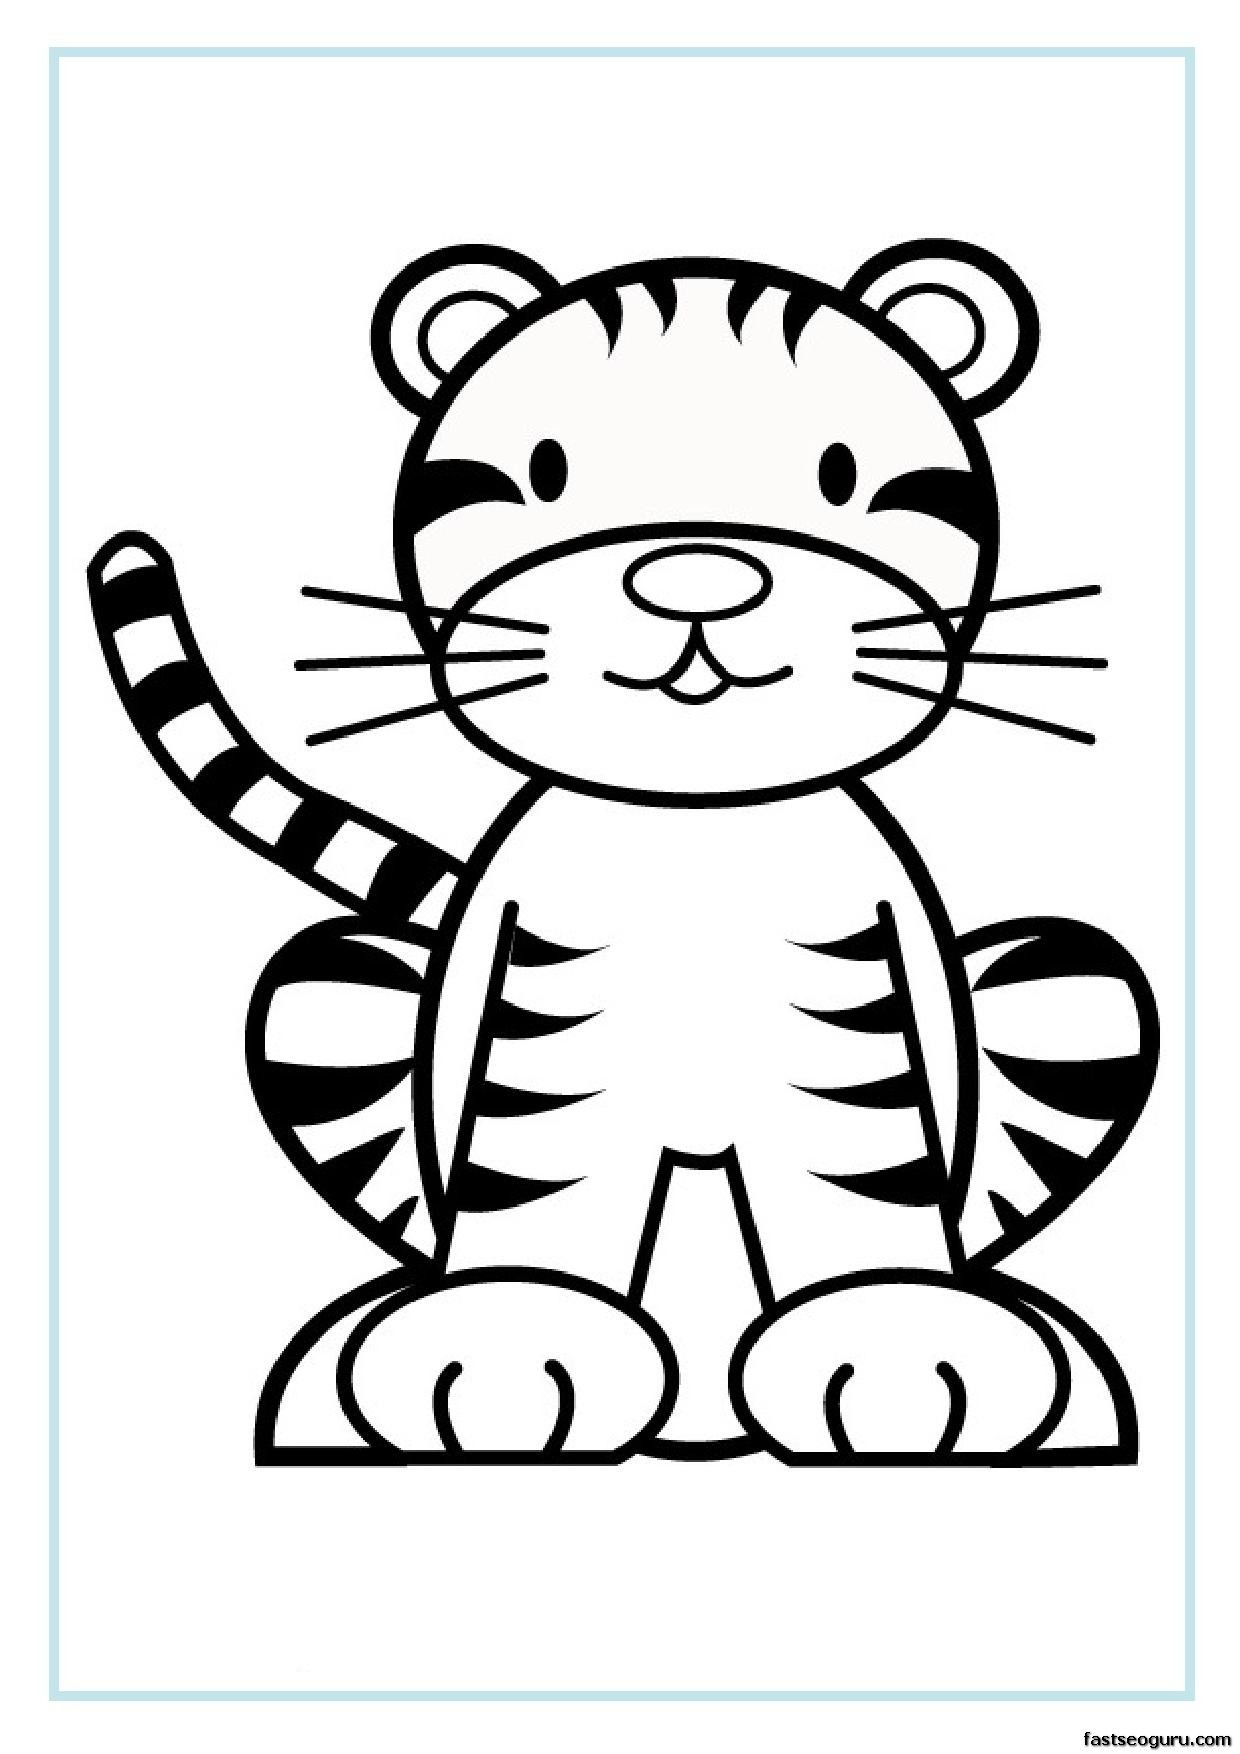 start them off young with this free printable animal tiger baby colouring sheet for kids printable coloring pages for kids